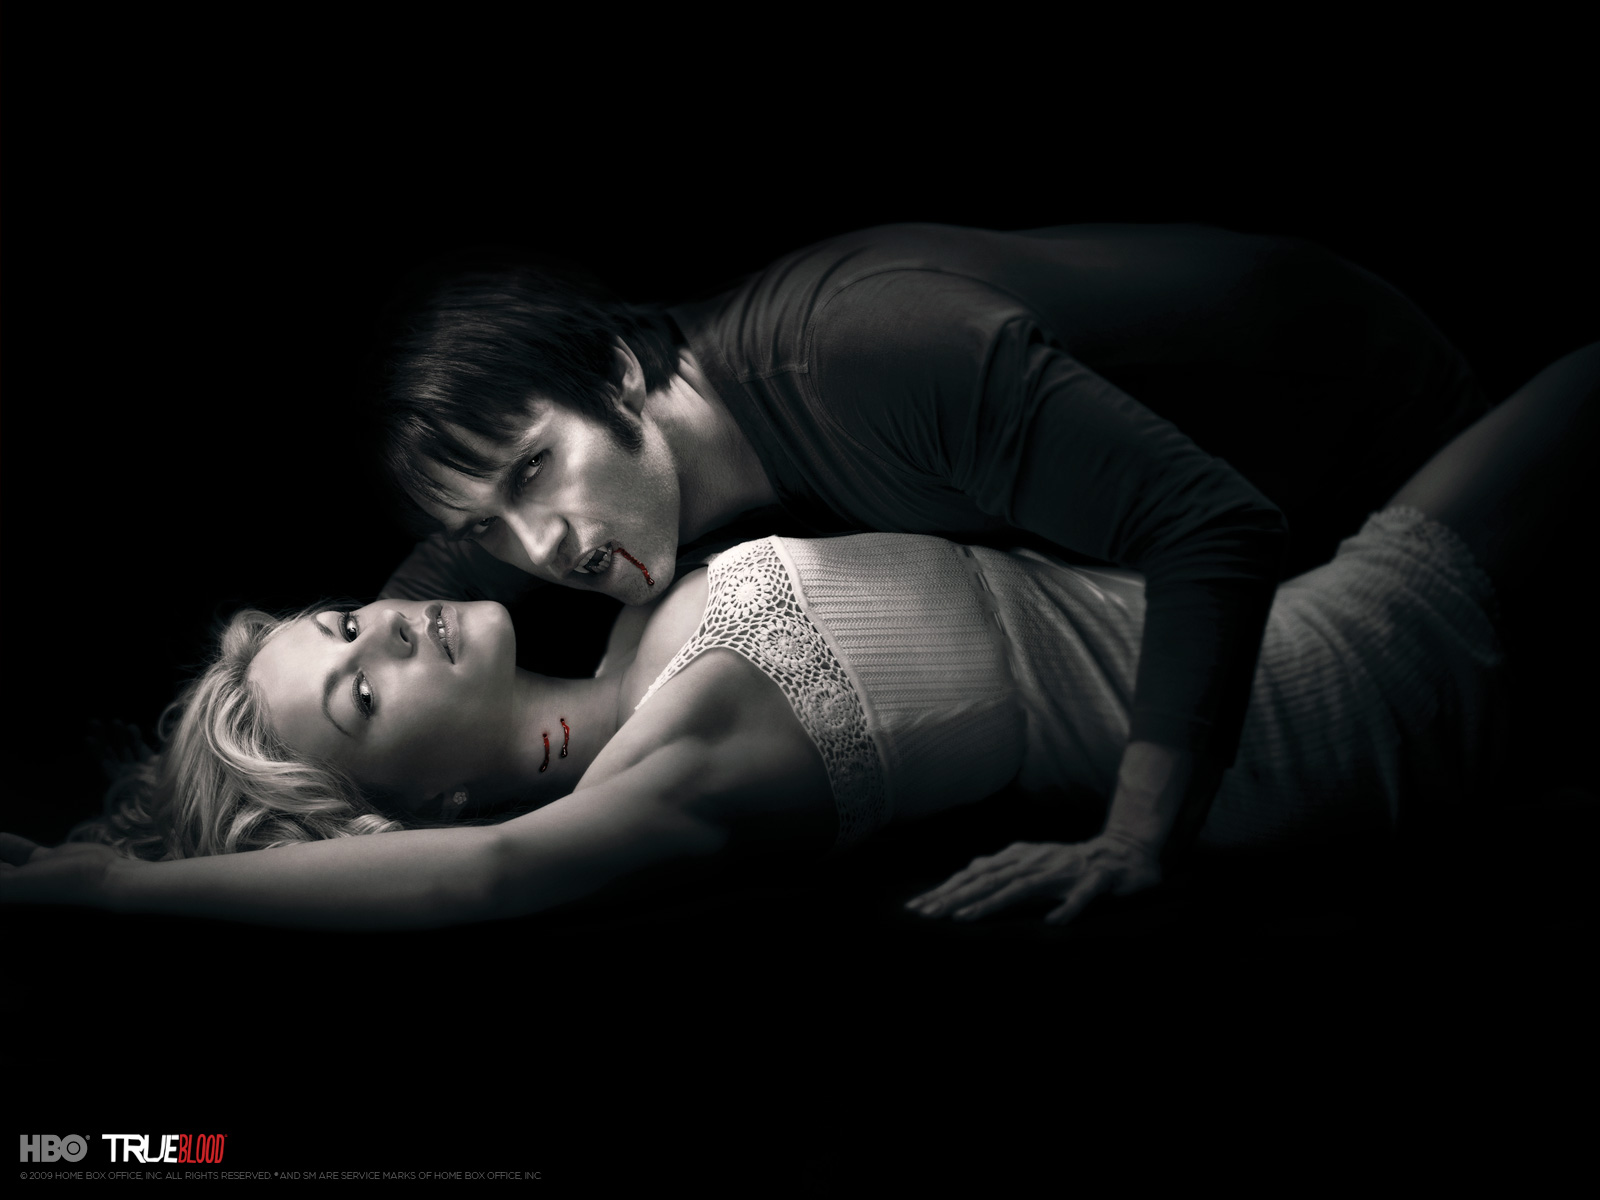 True Blood will call it quits after seventh season, scheduled to air on HBO in summer 2014 - nooooo!